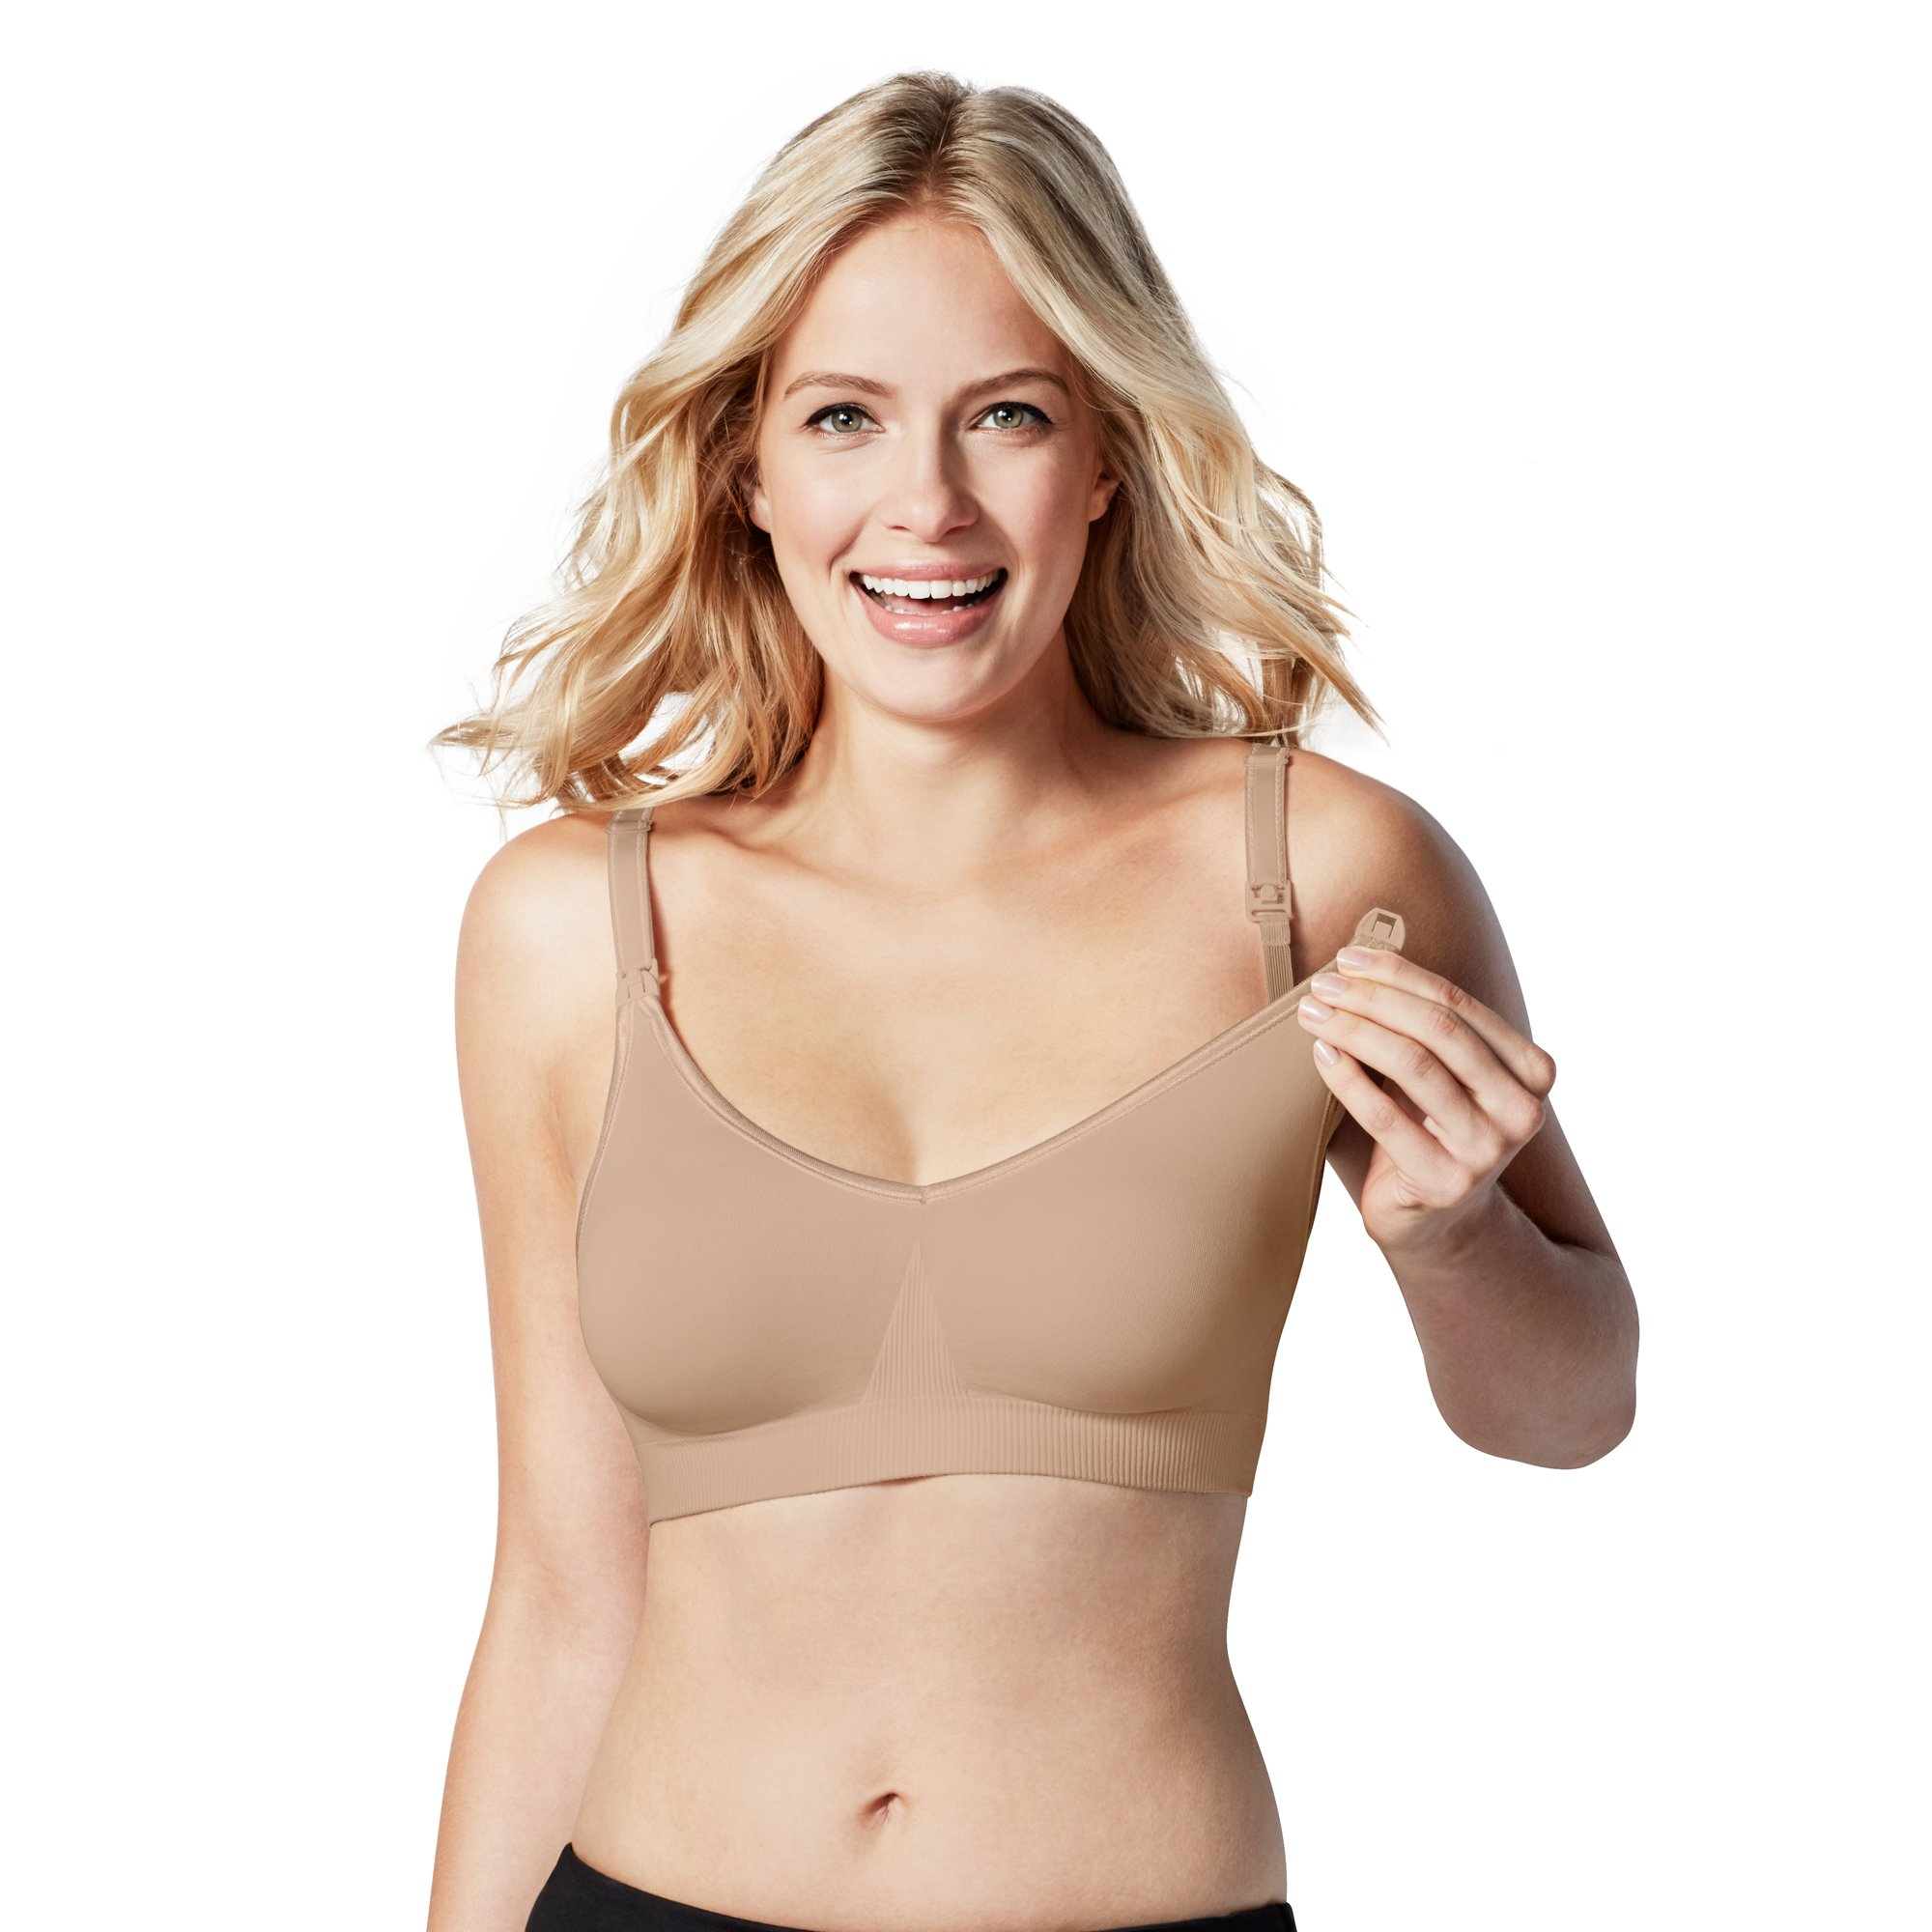 BRAVADO! DESIGNS Womens' Body Silk Seamless Nursing Bra - Butterscotch - Small